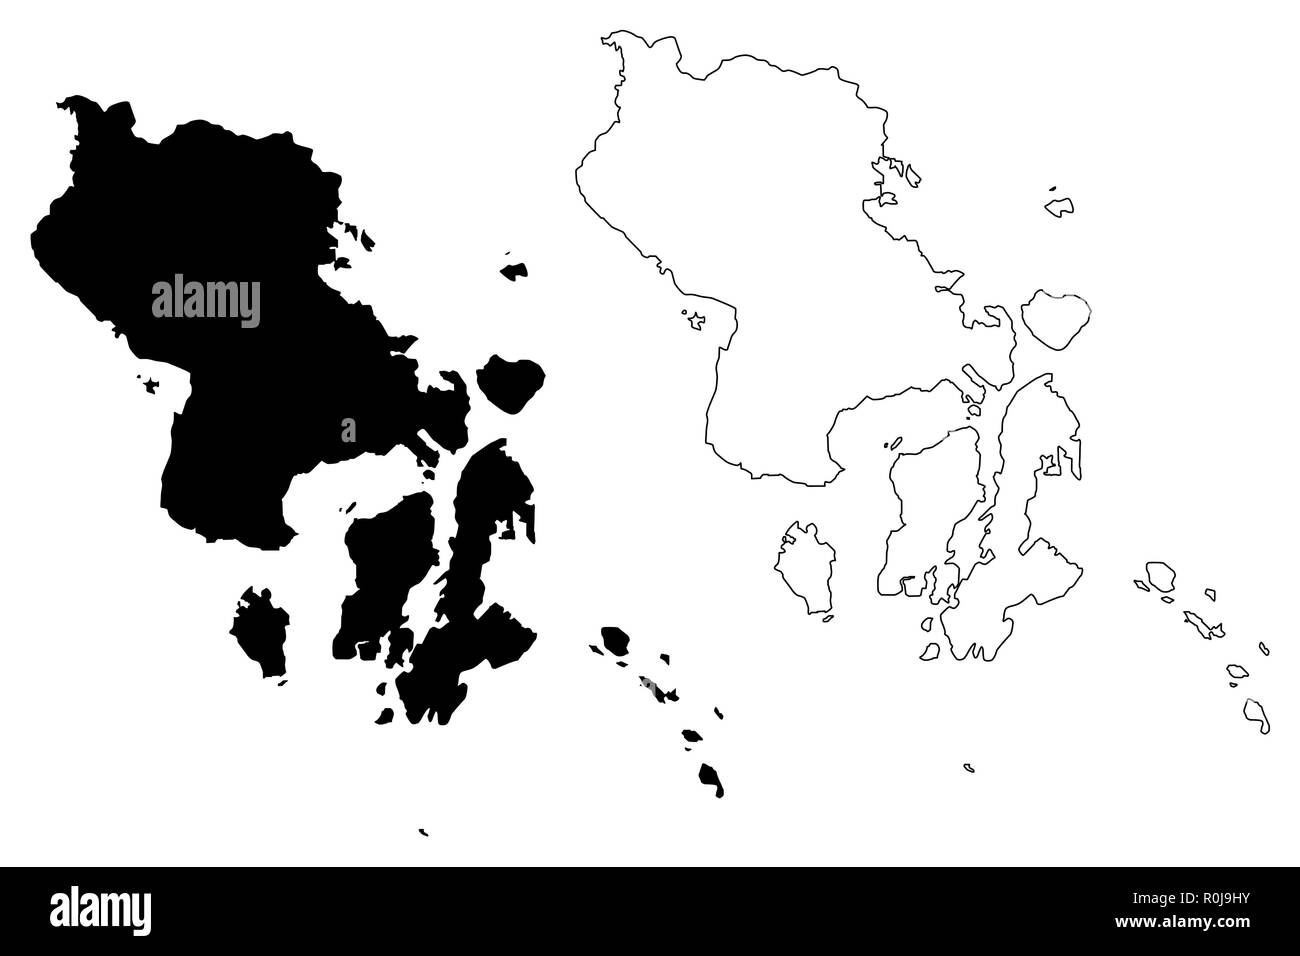 Southeast Sulawesi (Subdivisions of Indonesia, Provinces of Indonesia) map vector illustration, scribble sketch Southeast Sulawesi map - Stock Image